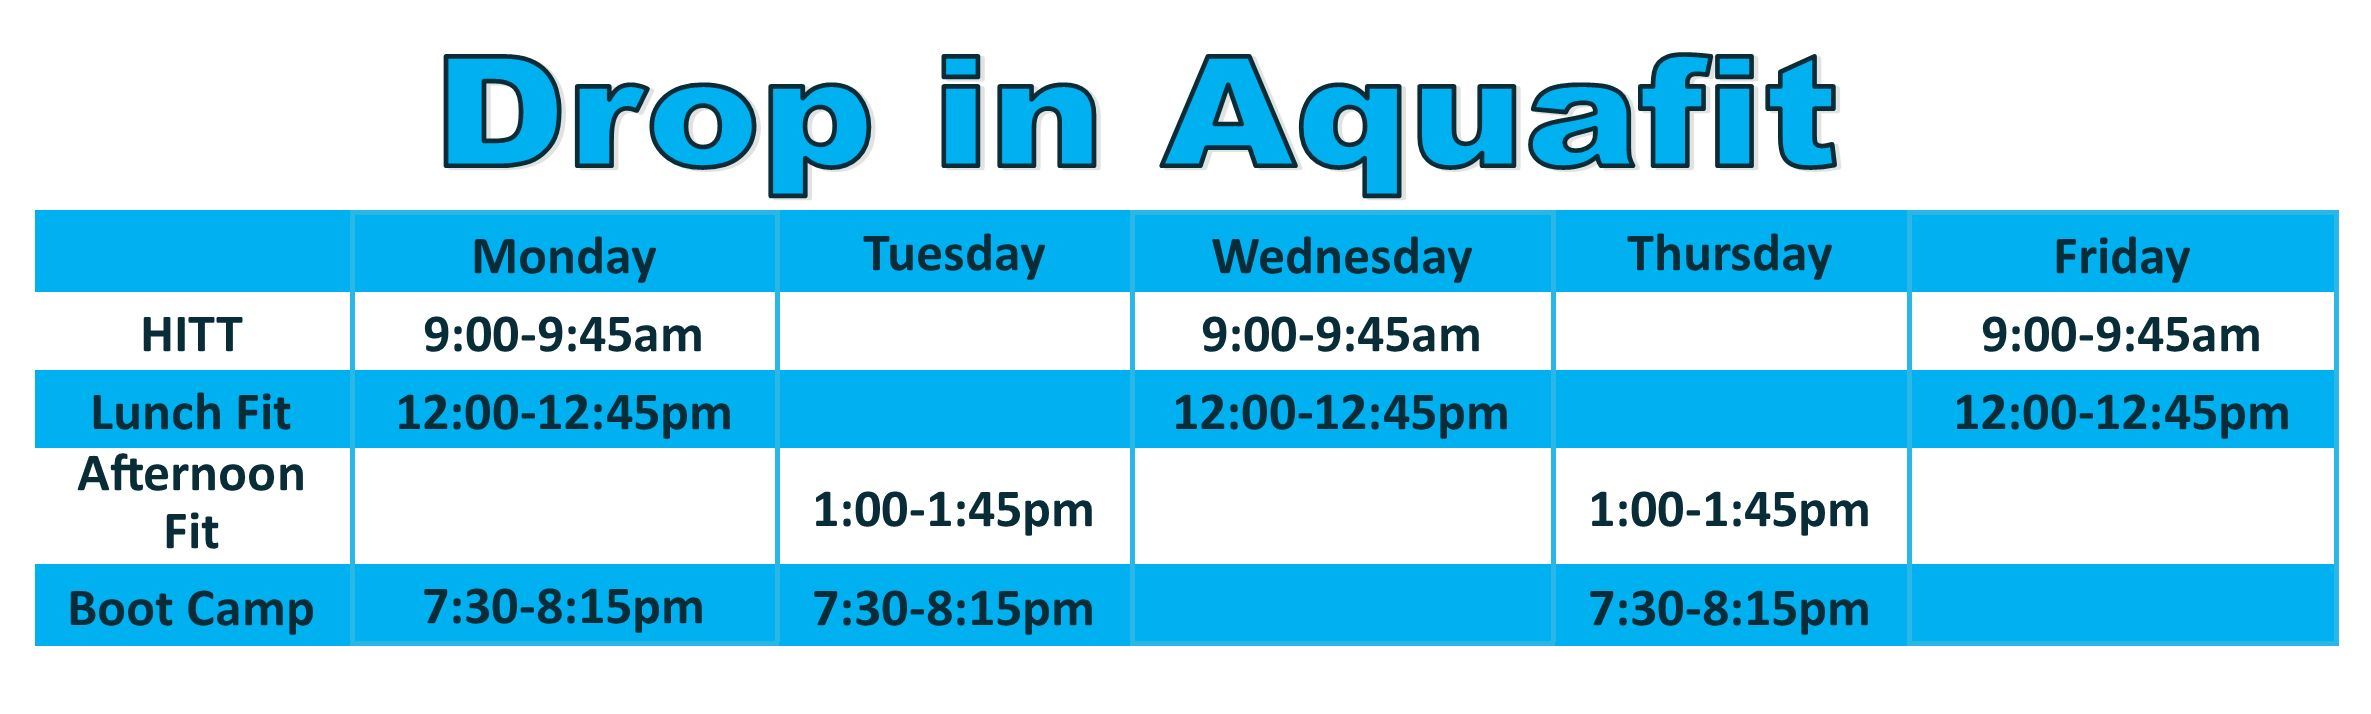 drop in aquafit 2019 2020